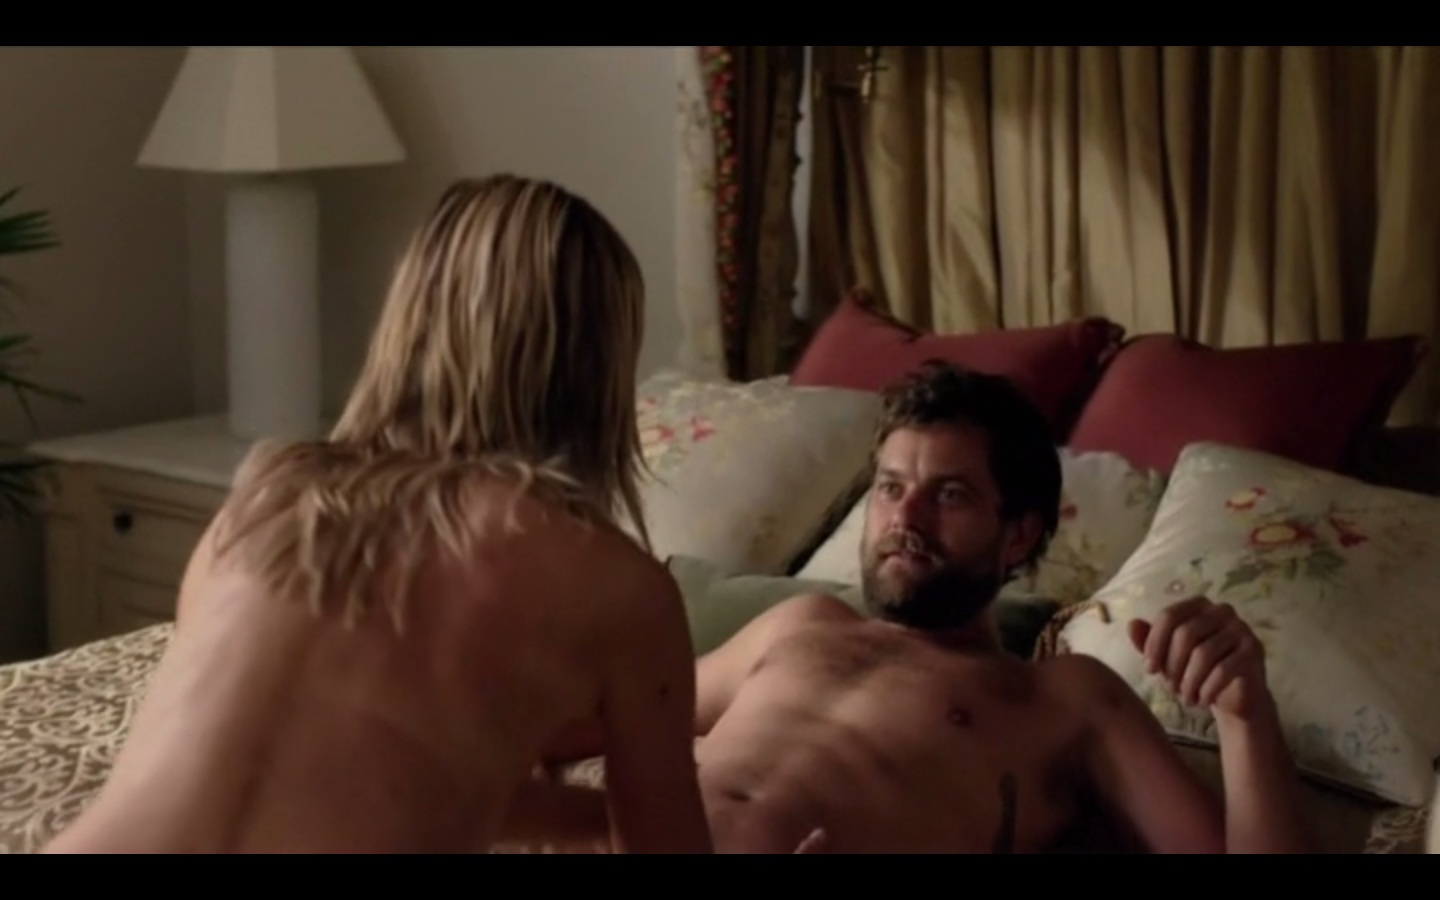 male stars doing nude scenes in movies